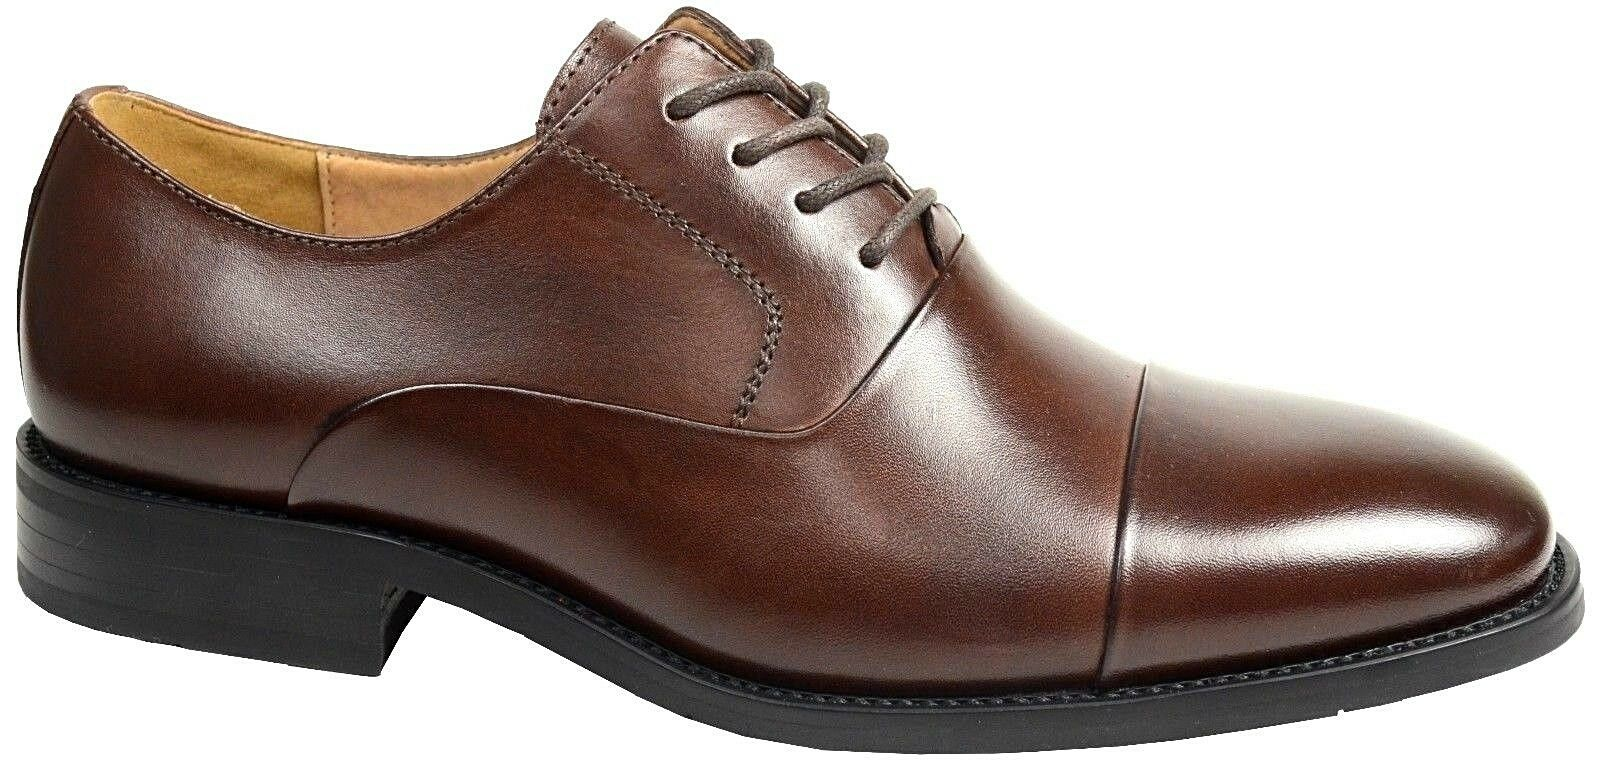 LA MILANO Mens Dress shoes Cow Leather Oxfords Classic Round Cap toe Brown F591